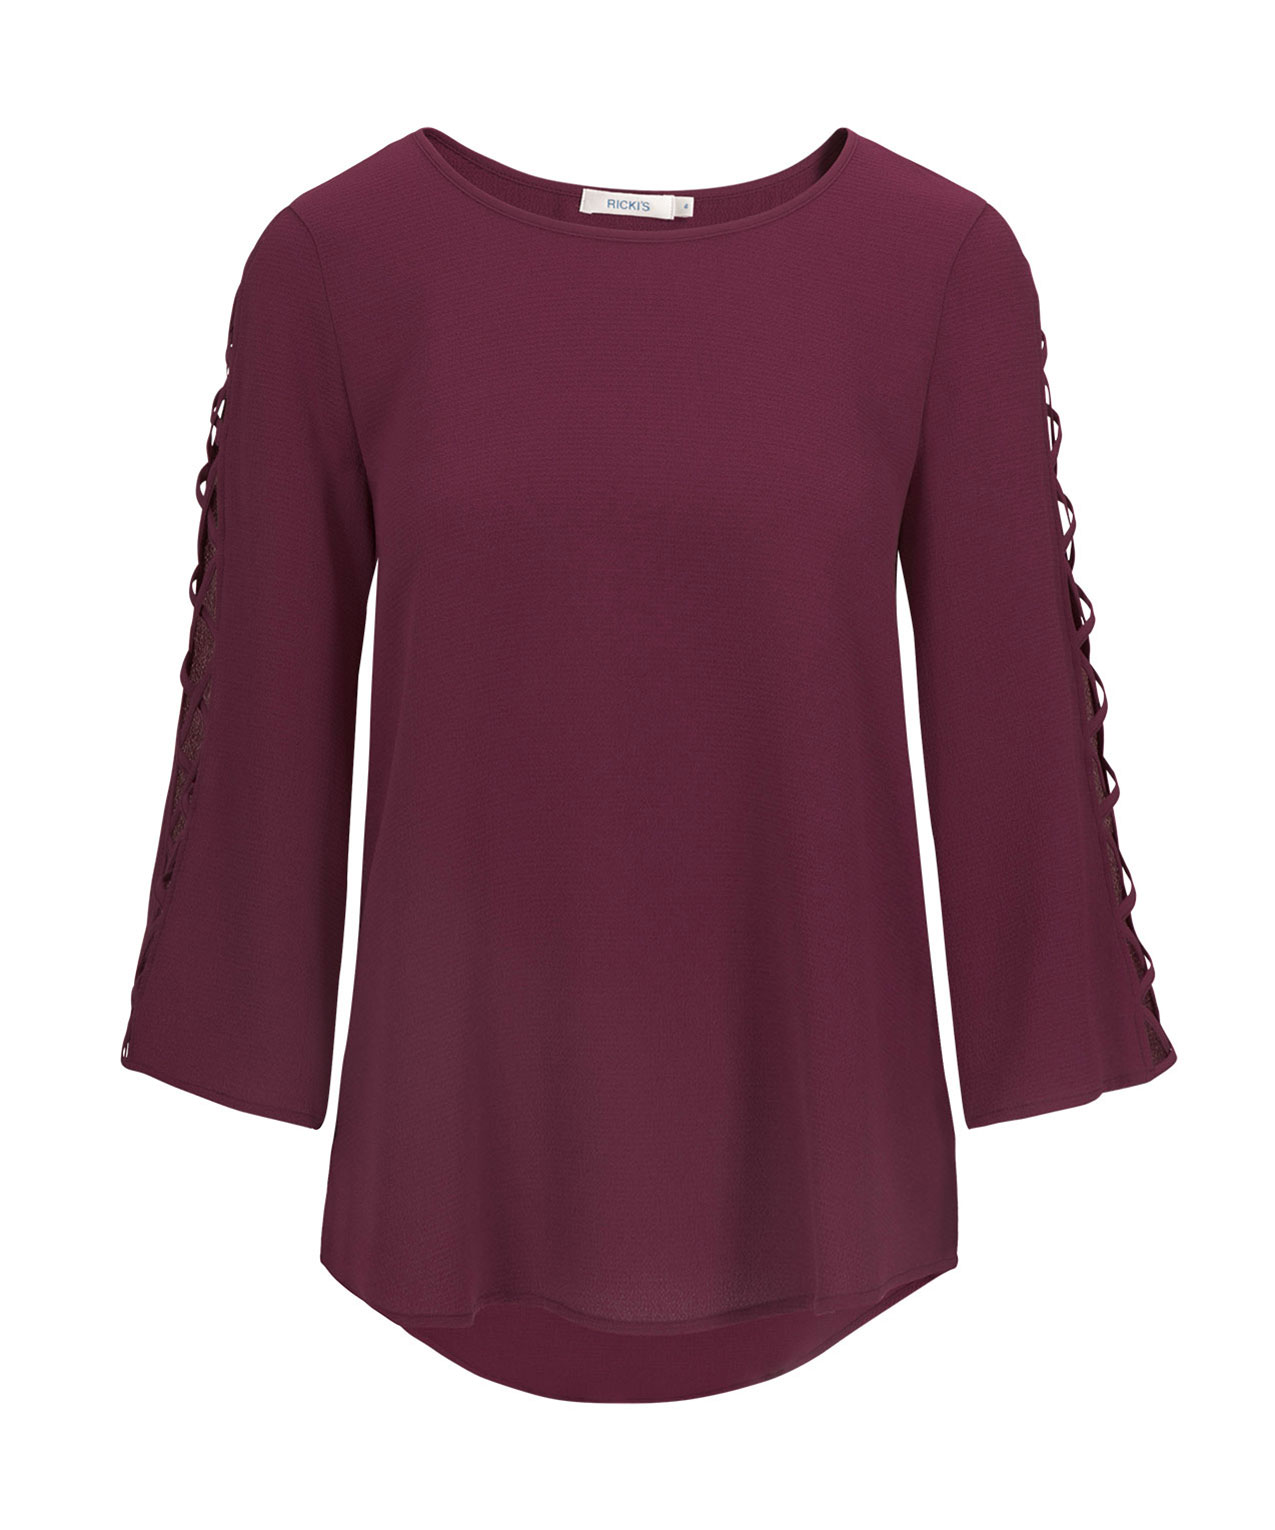 Scoop Neck Cage Sleeve Blouse, Black Cherry, hi-res